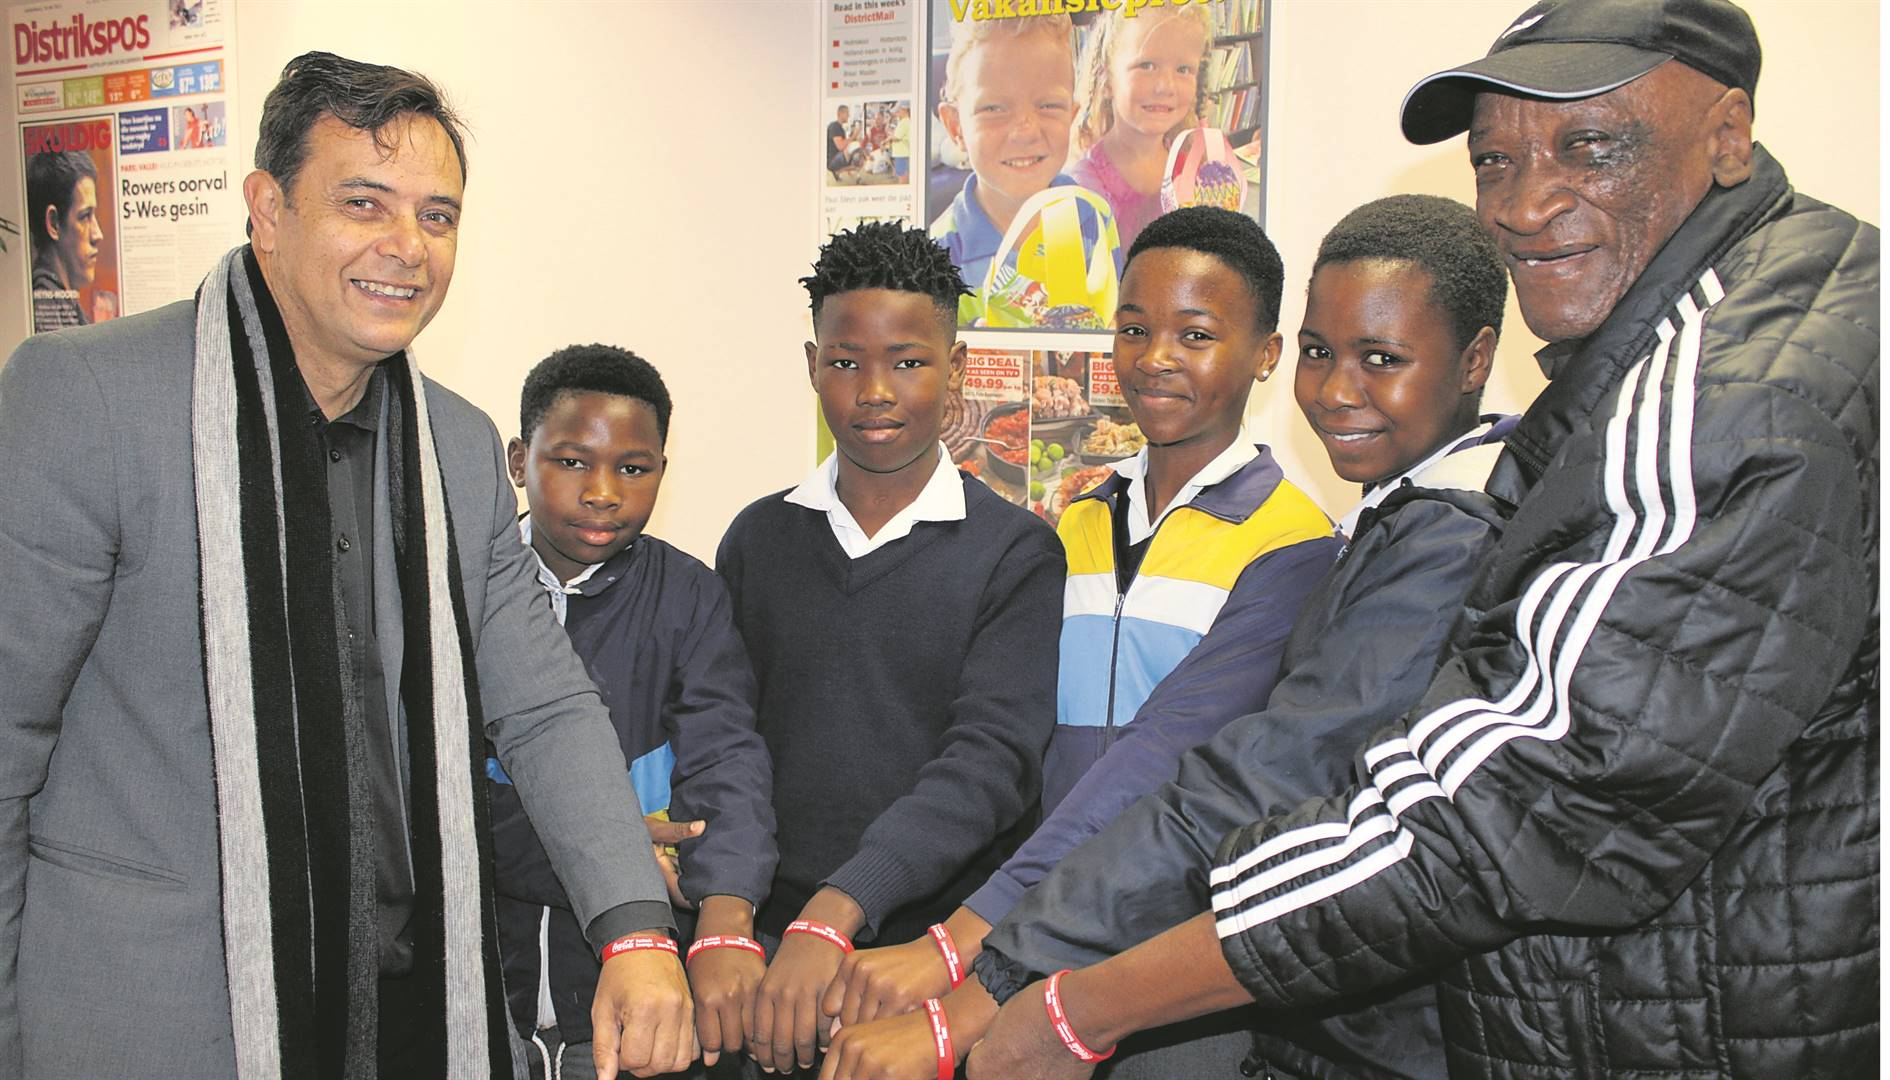 Showing off their new wristbands with emergency contact numbers were Ikraam Wentzel (deputy principal of Rusthof Primary) with learners Lionel Visagie, Asekho Kwepile, Indiphile Waka, Onikayo Makhenyane and Vincent Daniels (Sacsa president). Photo: Yaseen Gaffar